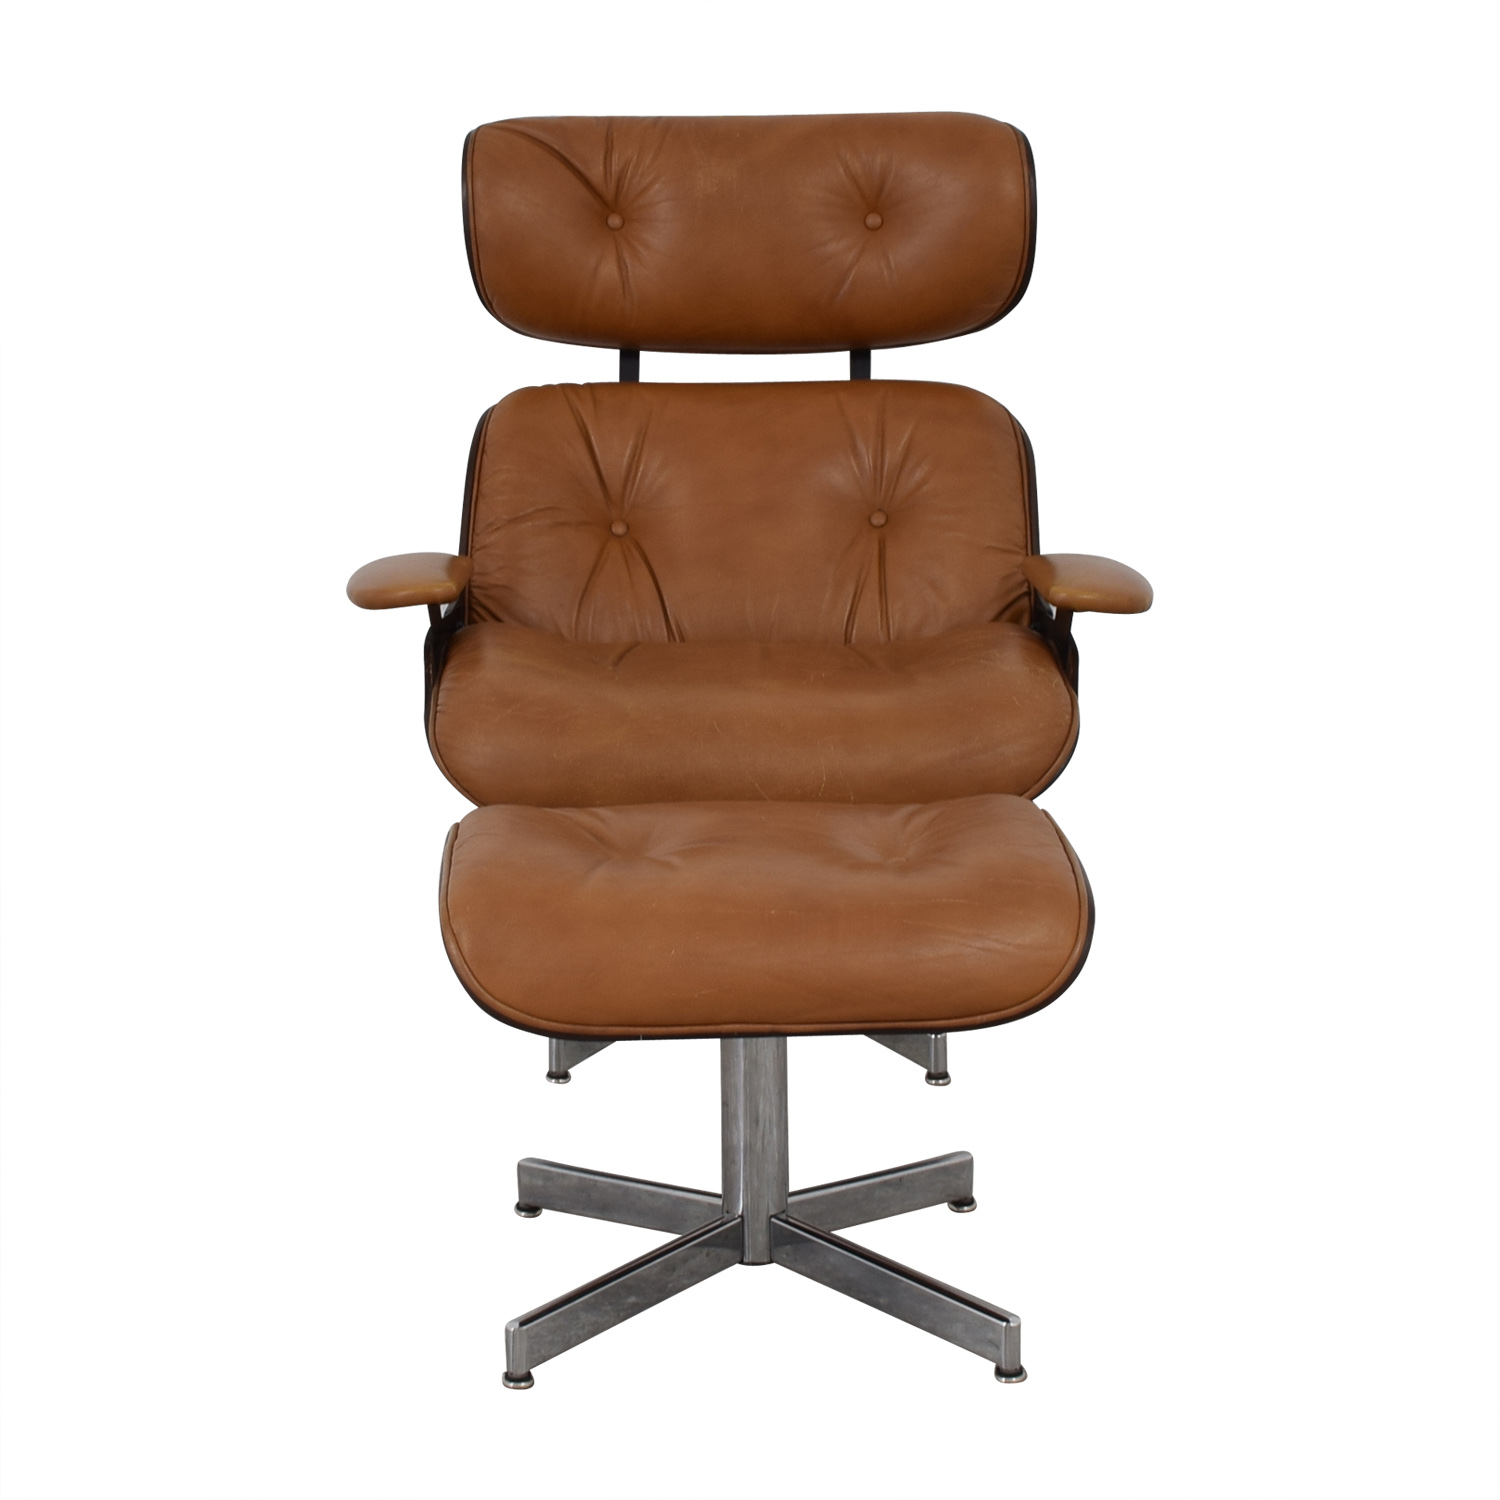 buy Plycraft Plycraft Eames Style Lounge Chair and Ottoman online